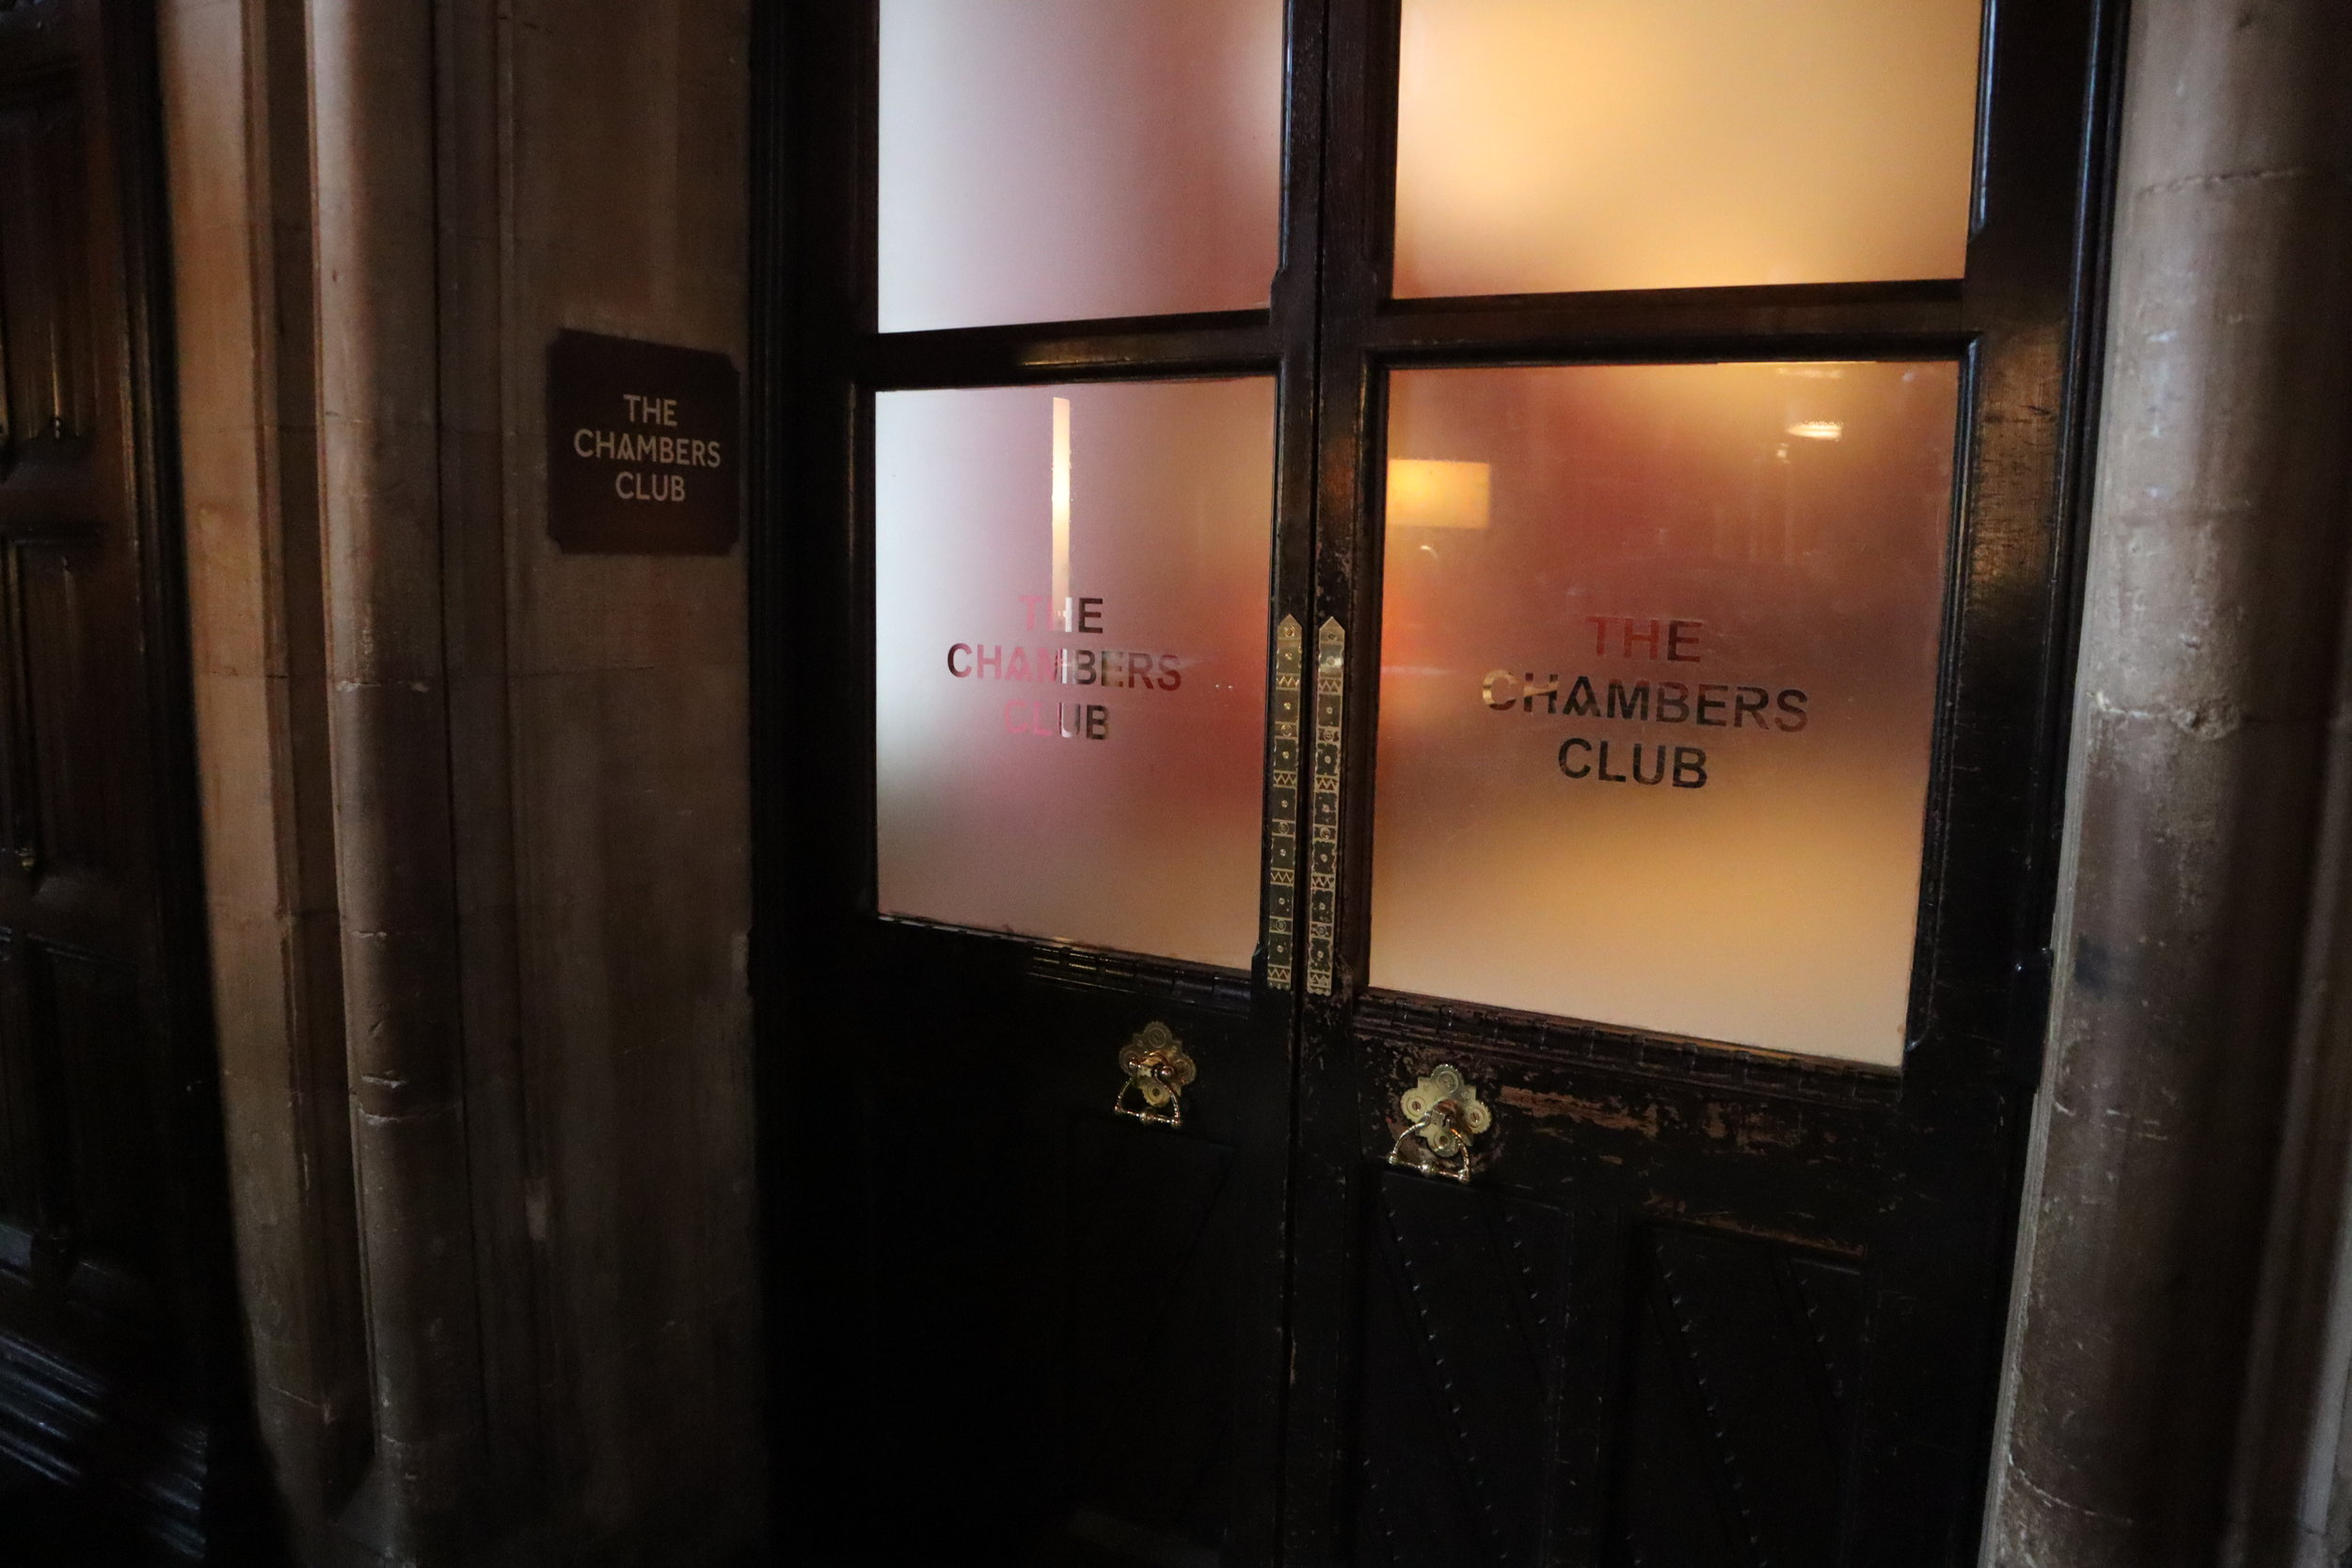 St. Pancras Renaissance Hotel London – Chambers Club entrance